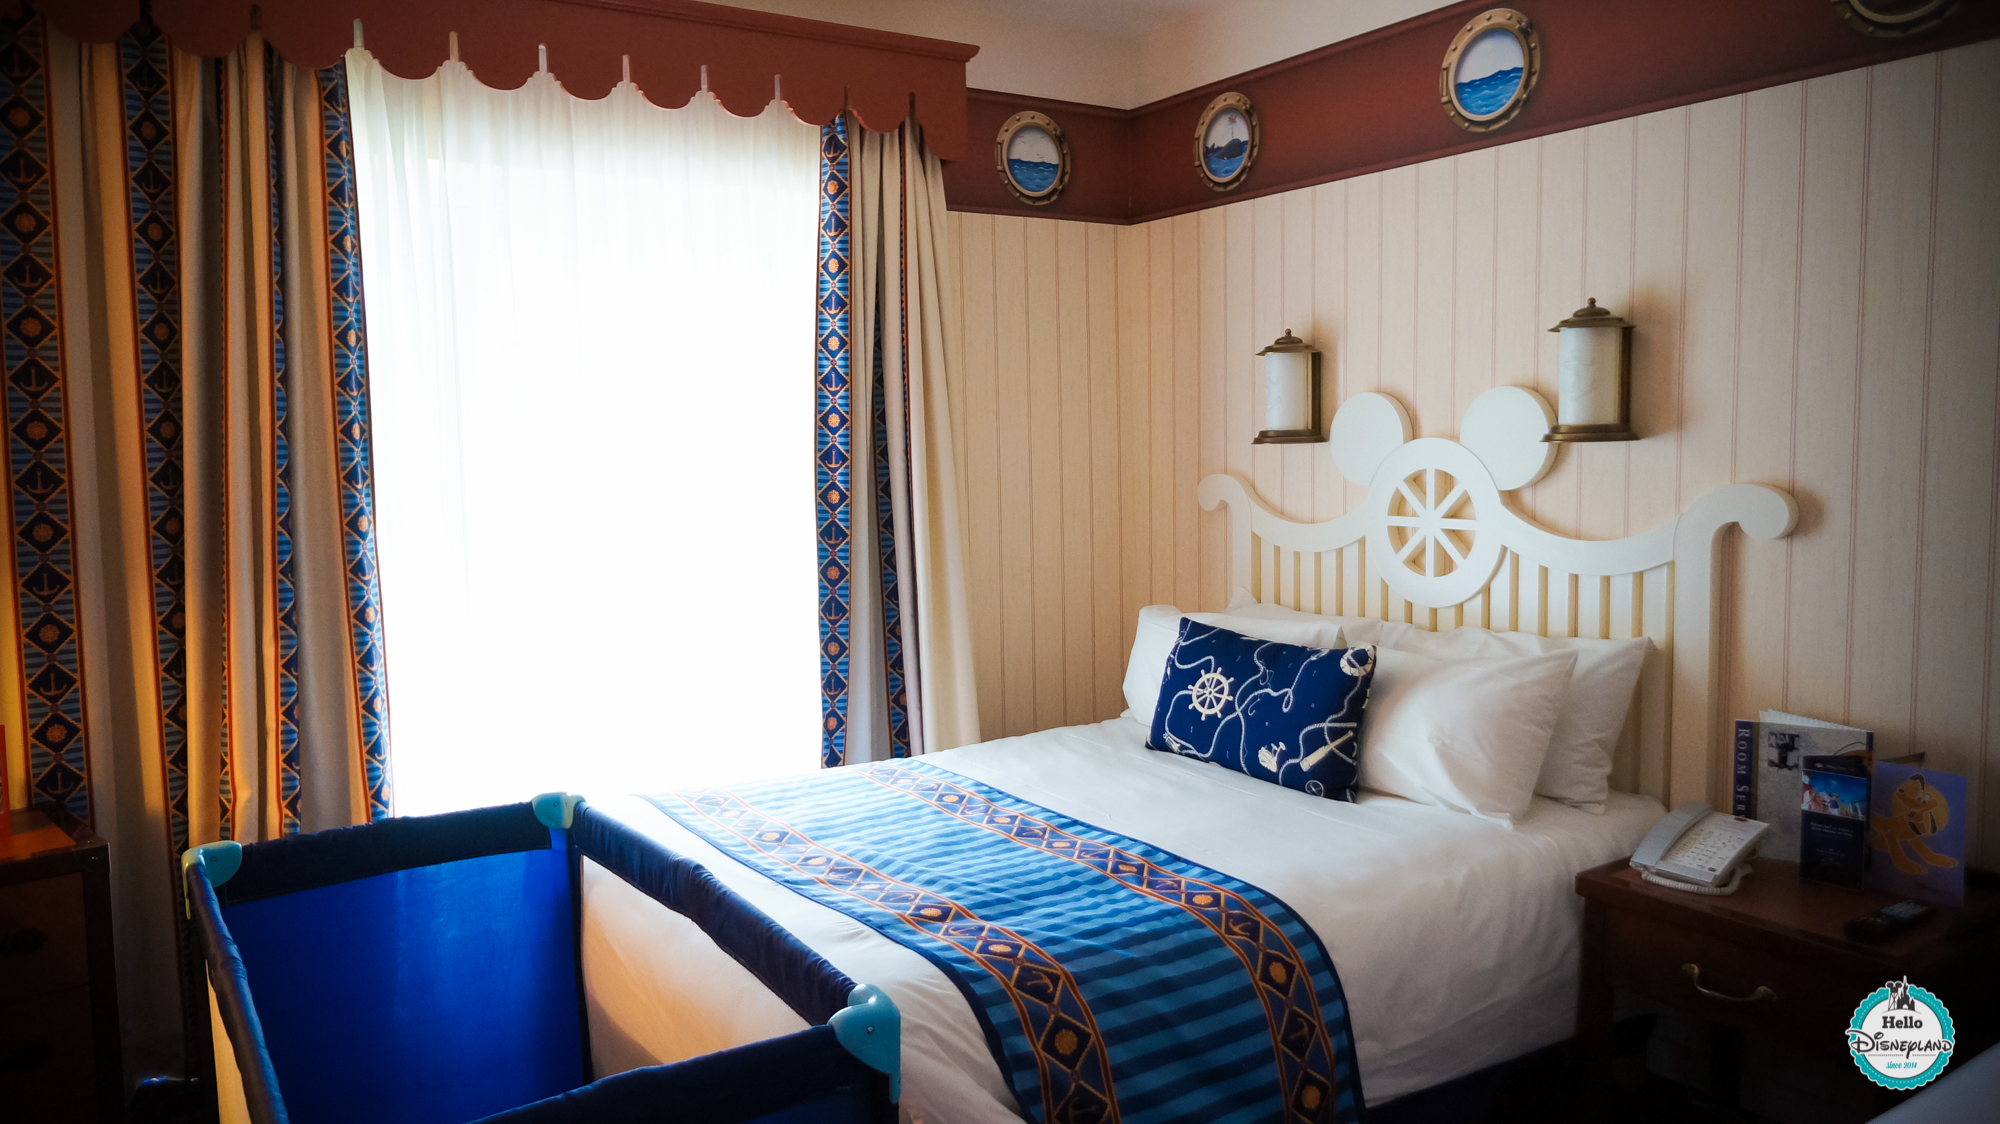 Chambre hotel disneyland paris good disneyus hotel santa for Chambre castle club disneyland hotel